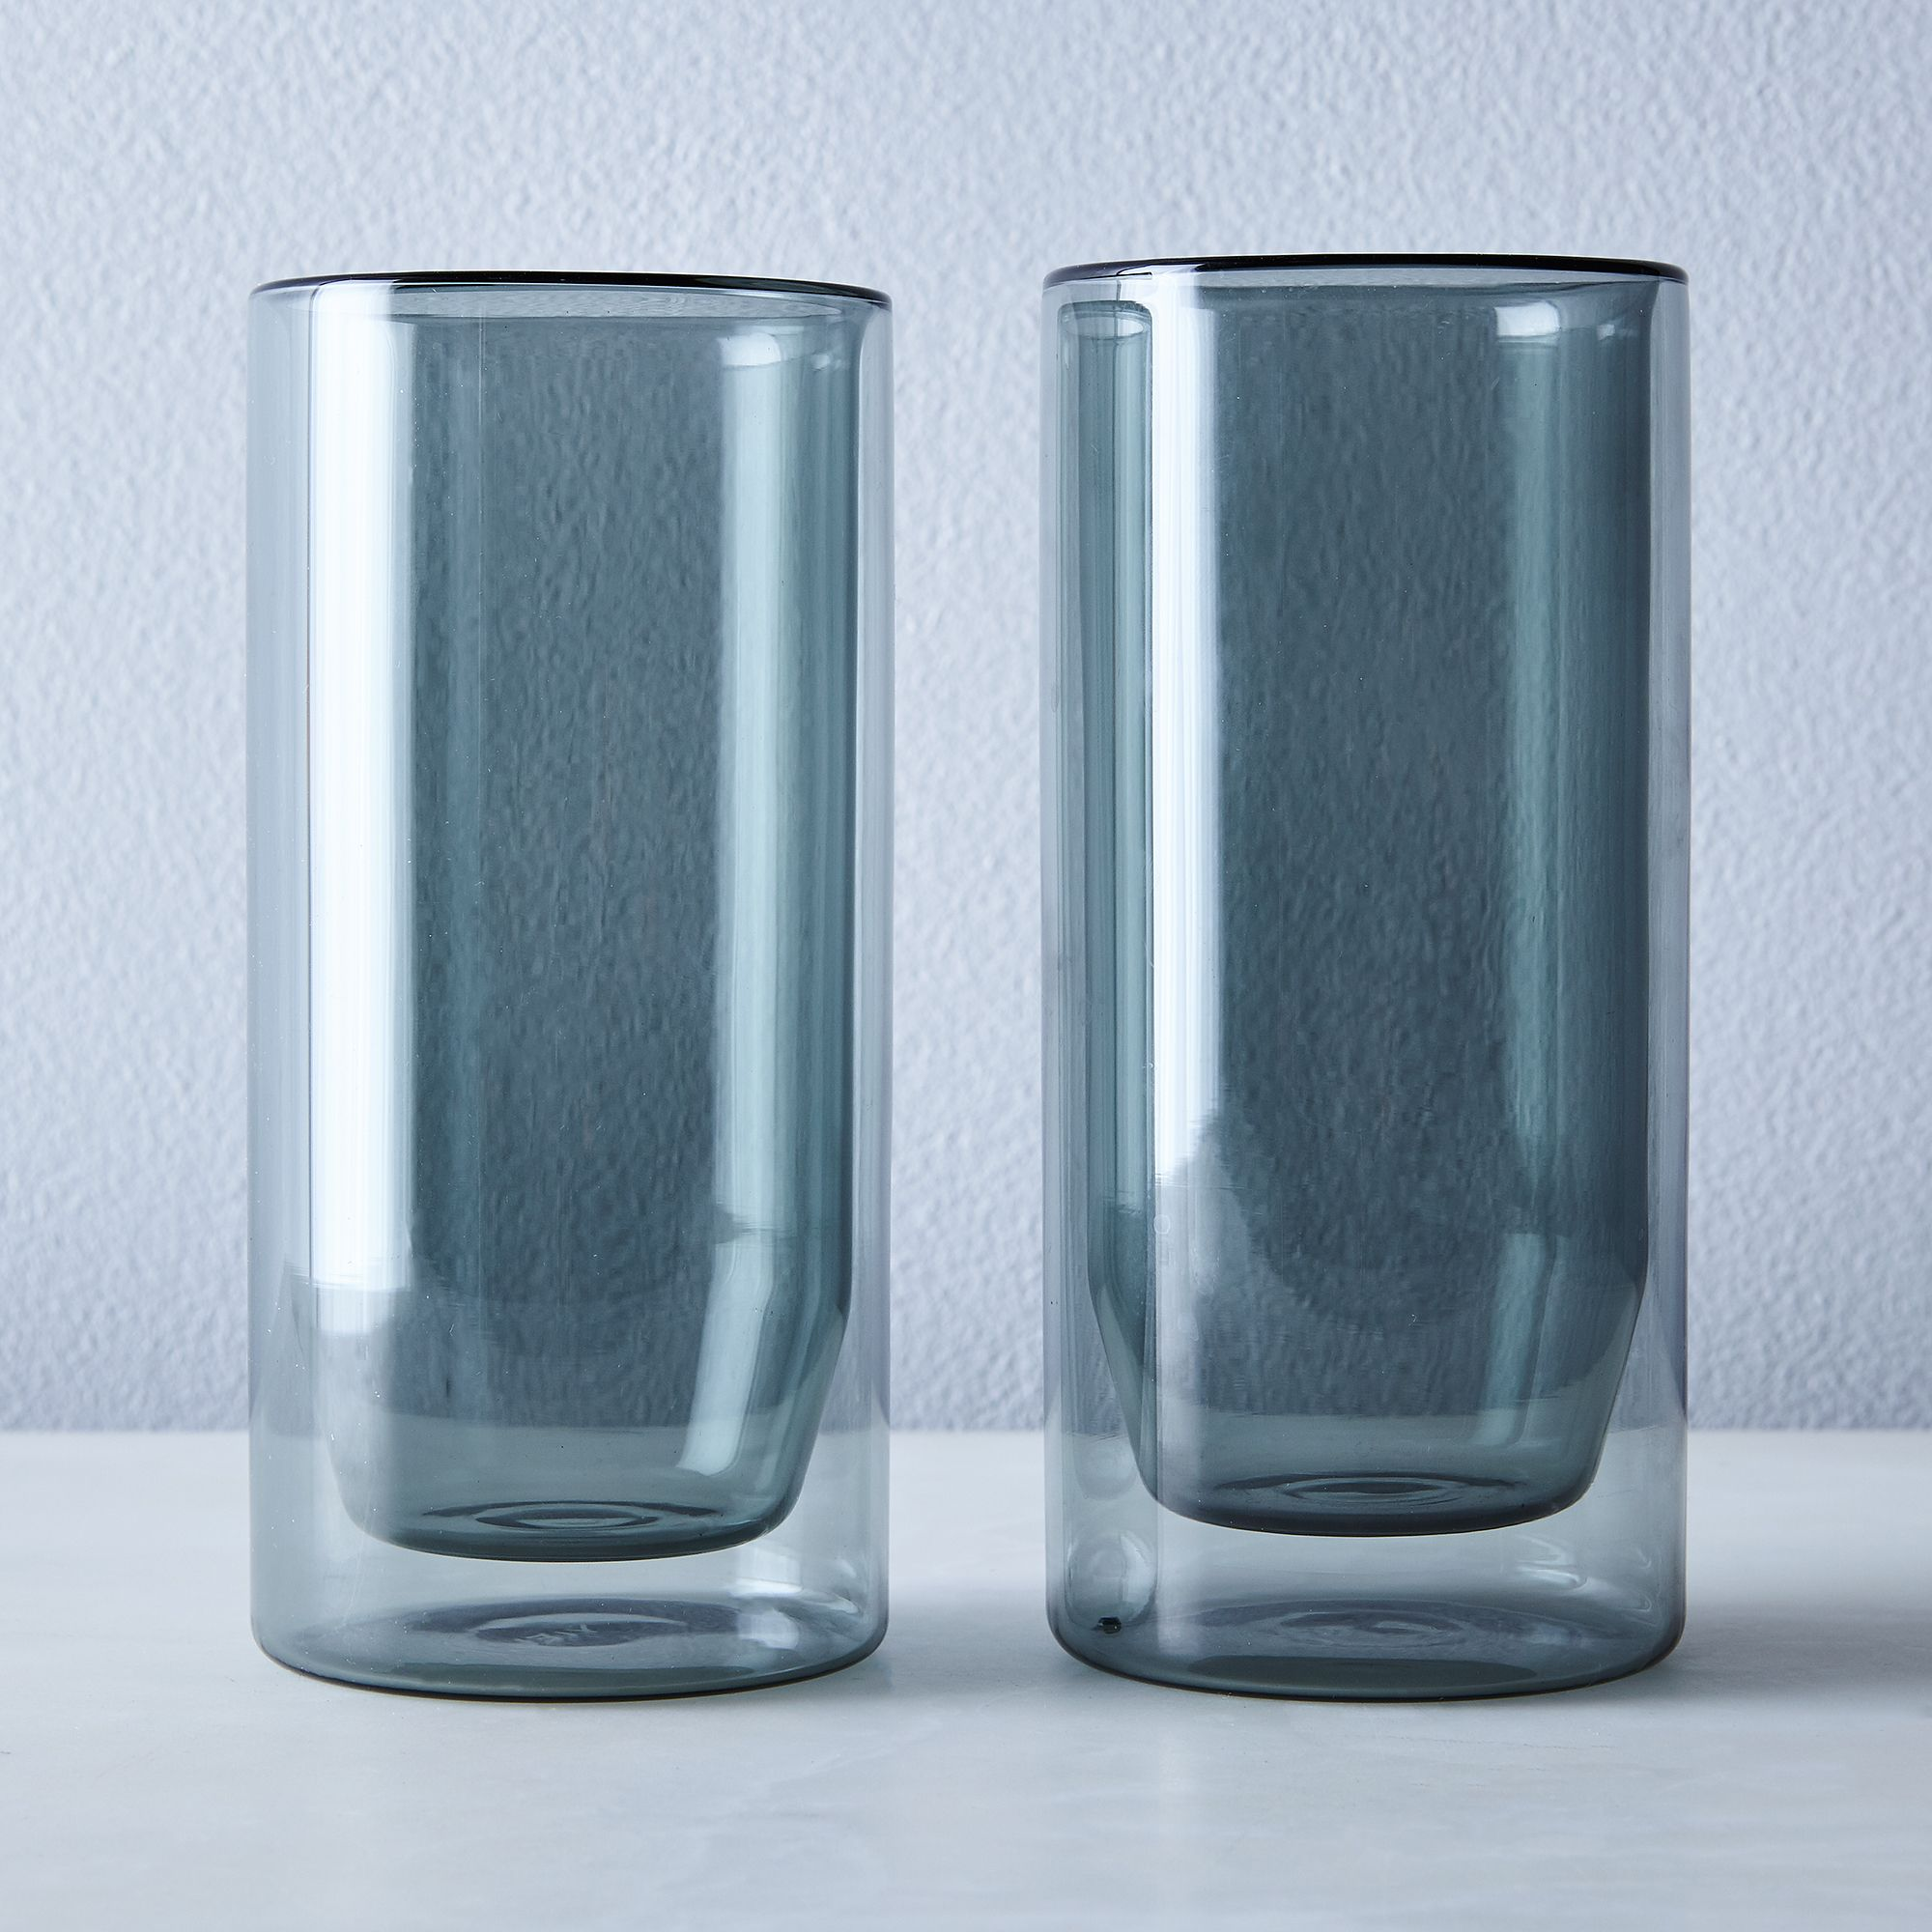 B9984b1f 6064 4f0b ad1b fd39d5125297  2017 0505 yield double walled glassware tall smoke silo rocky luten 001